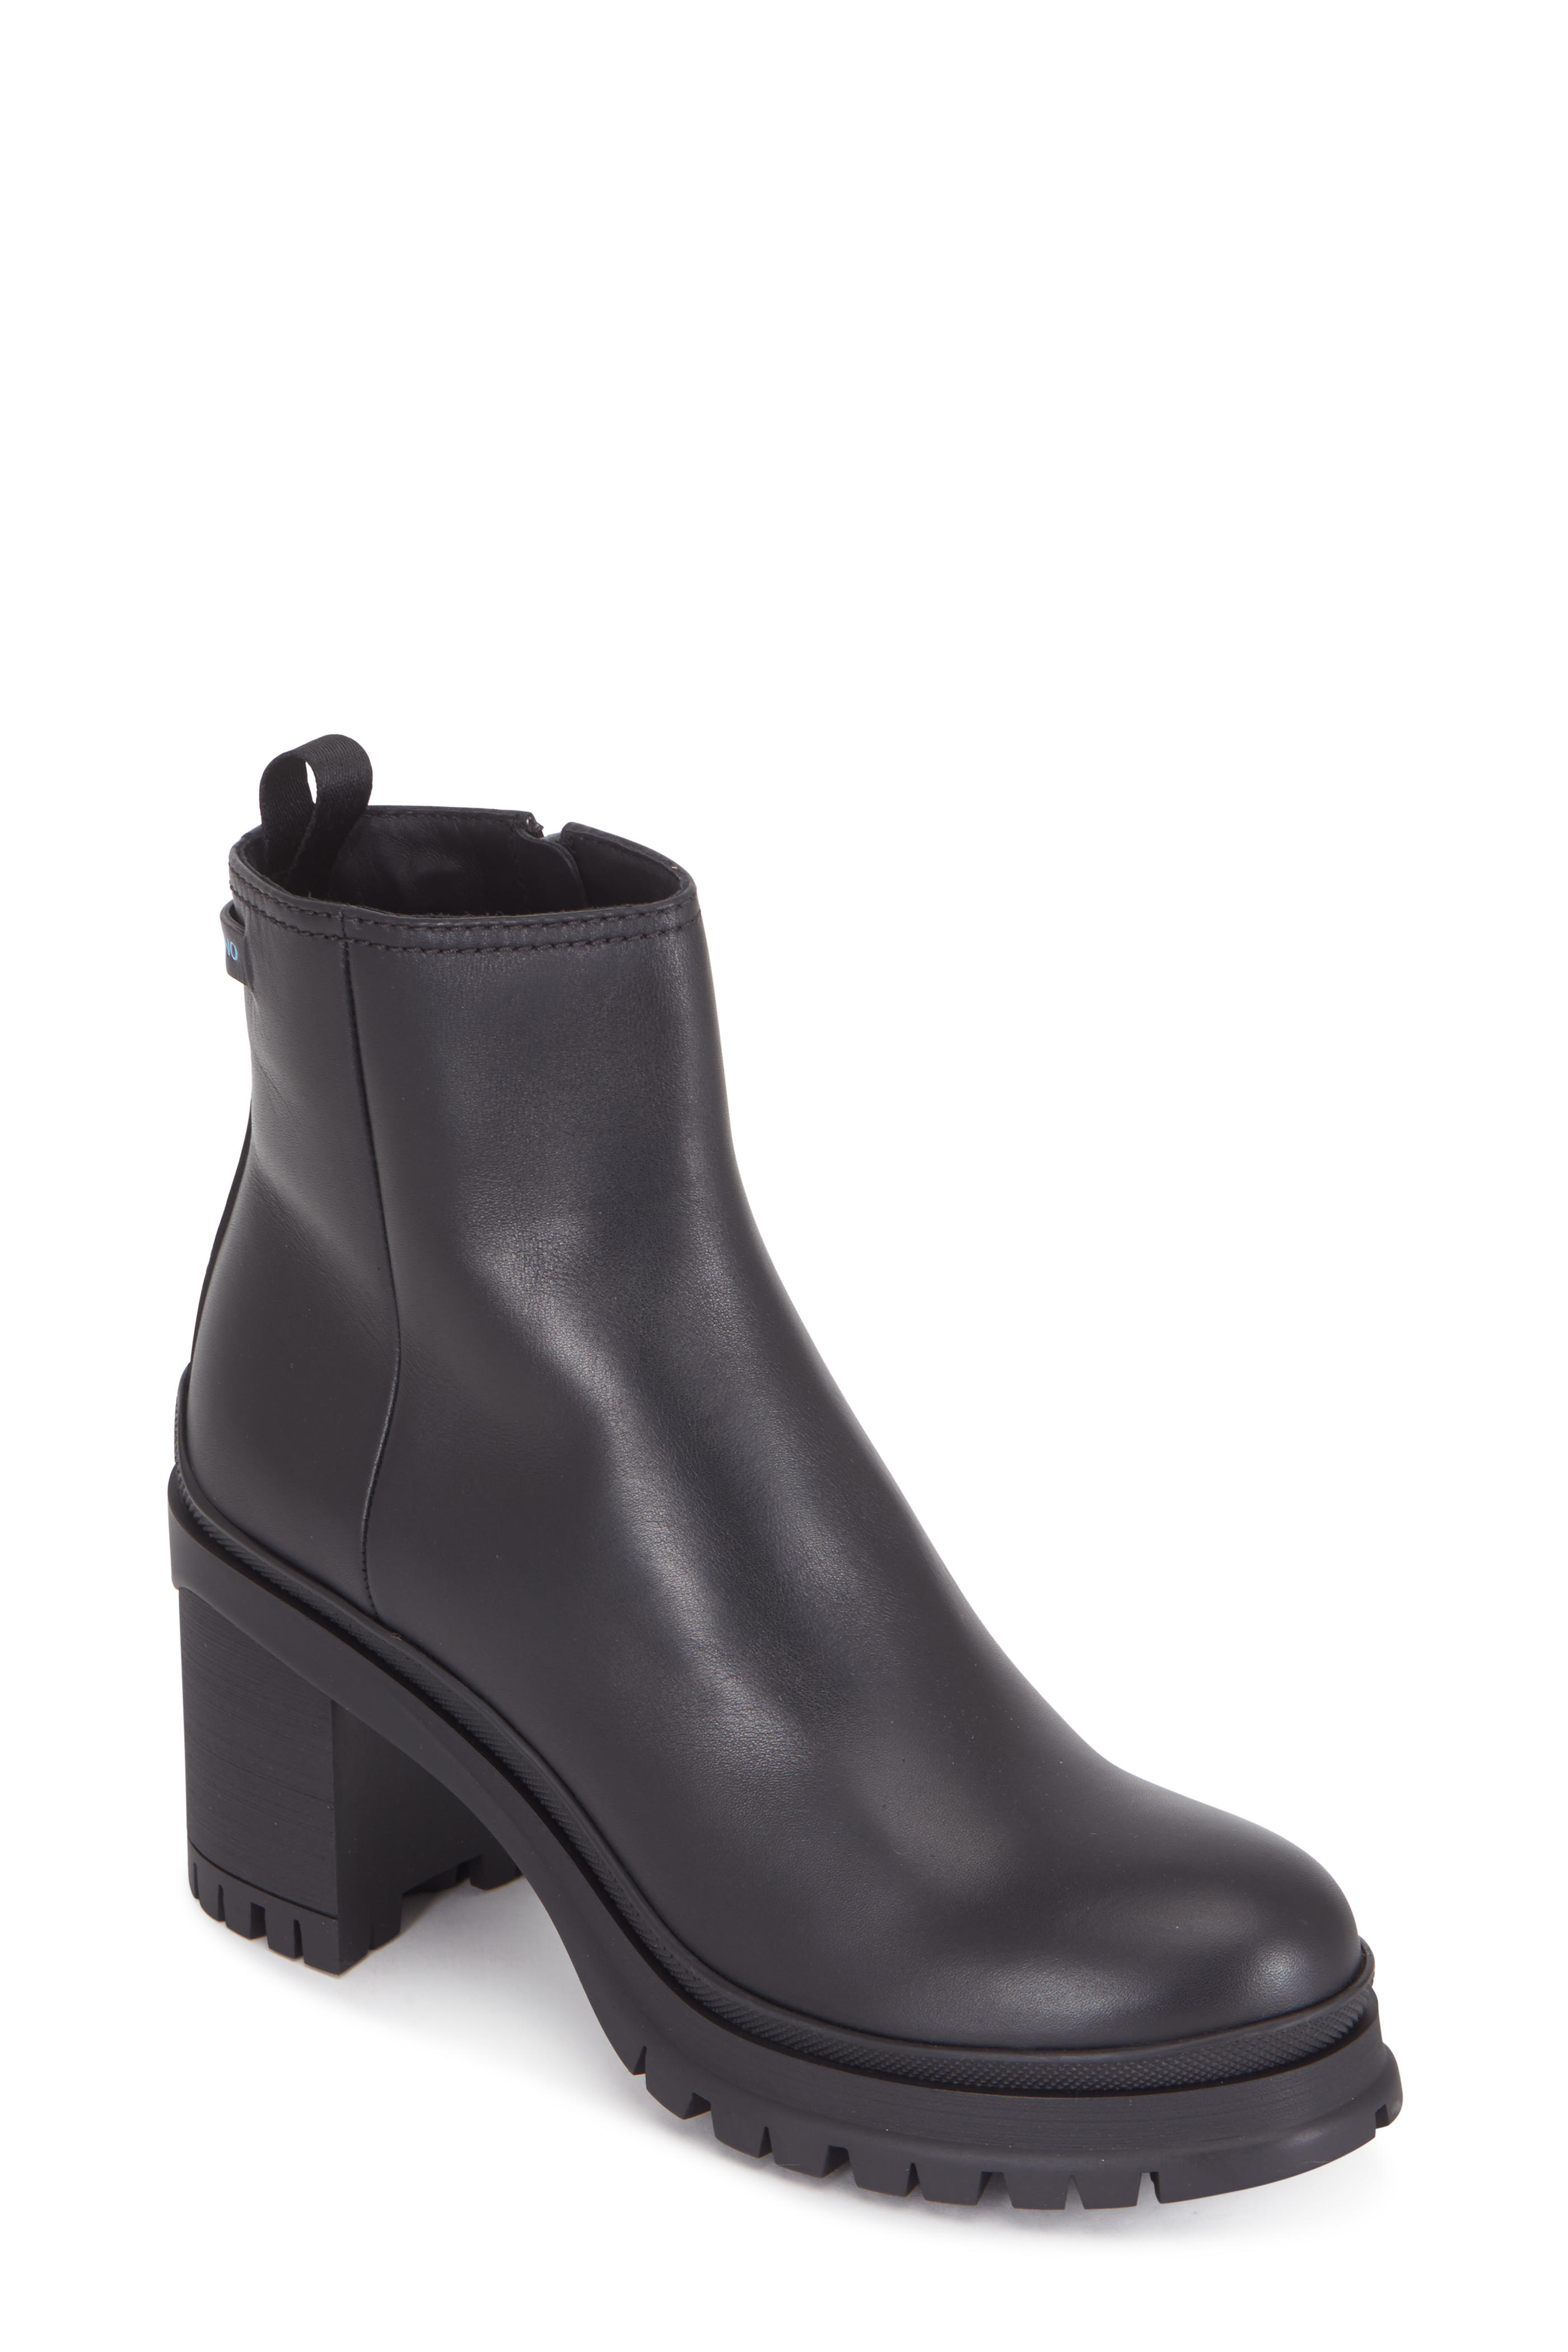 e82f161f Prada - Black Leather Lug Sole Ankle Boot, 55mm   Mitchell Stores